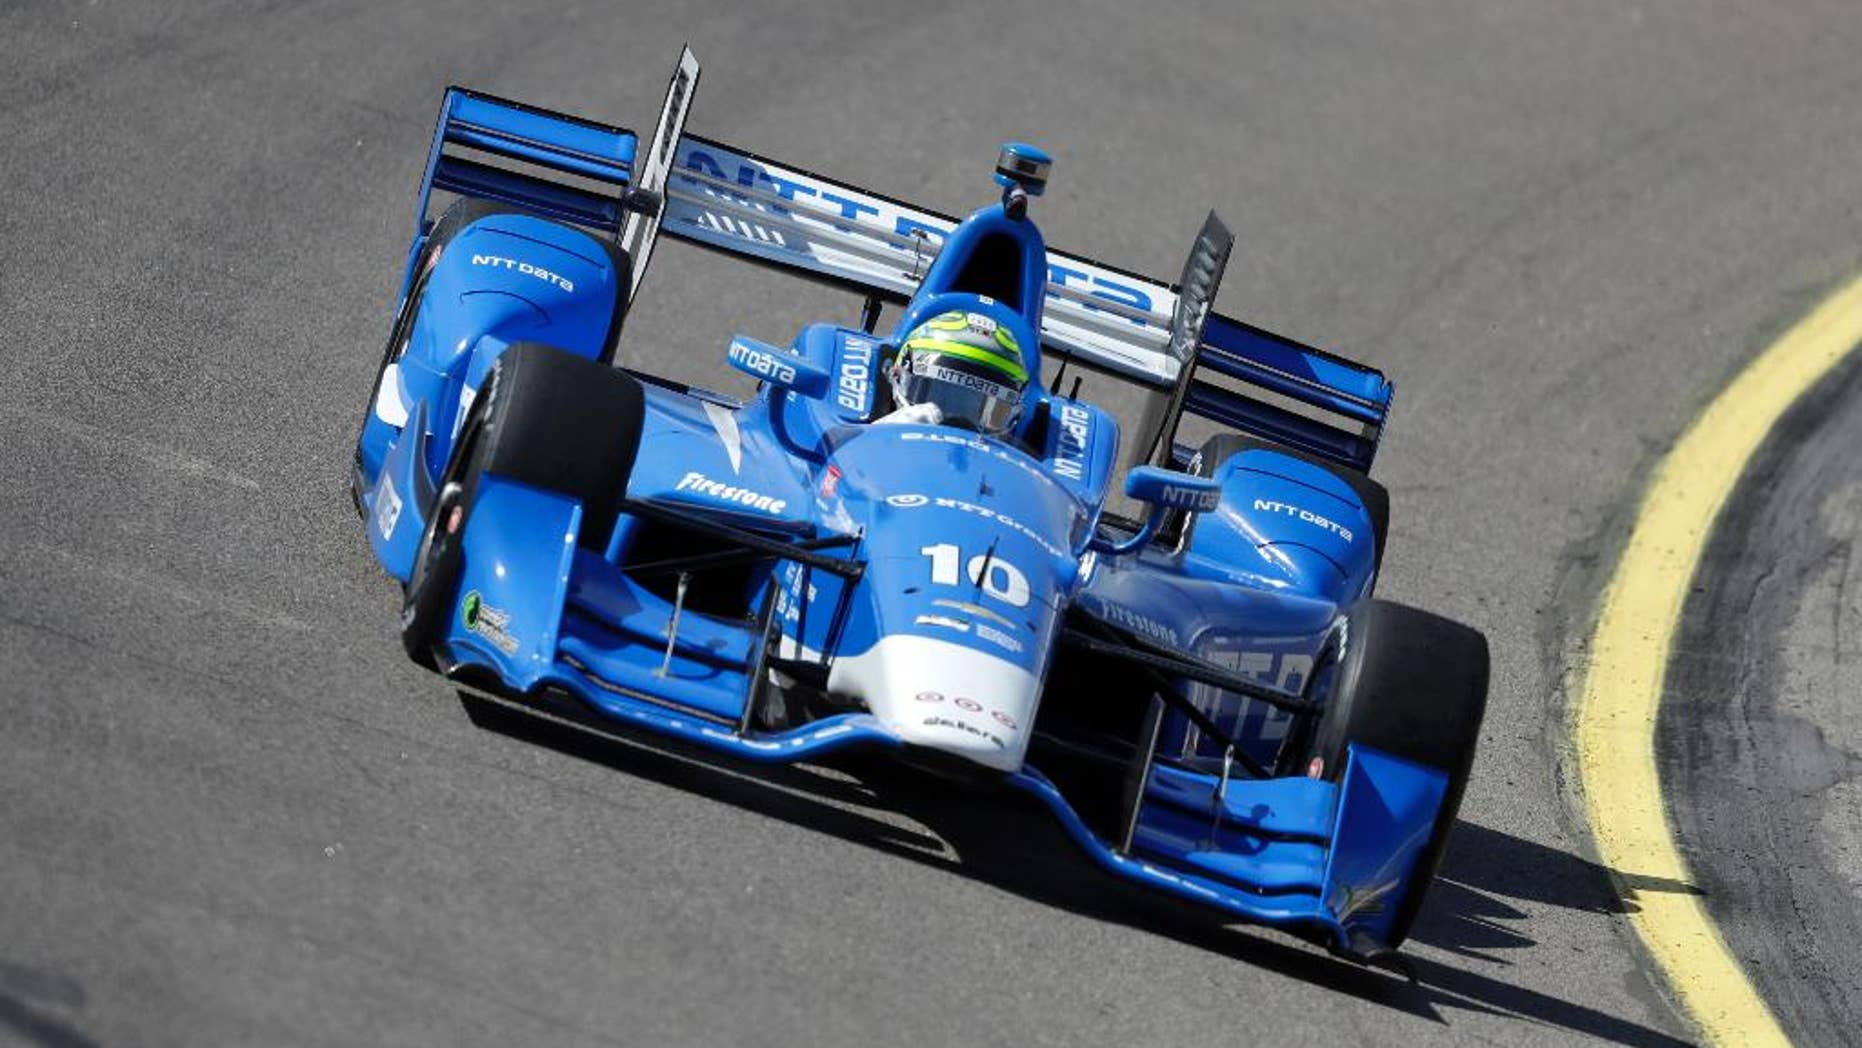 Tony Kanaan drives his car during practice for the IndyCar Series auto race Saturday, July 9, 2016, at Iowa Speedway in Newton, Iowa. (AP Photo/Charlie Neibergall)